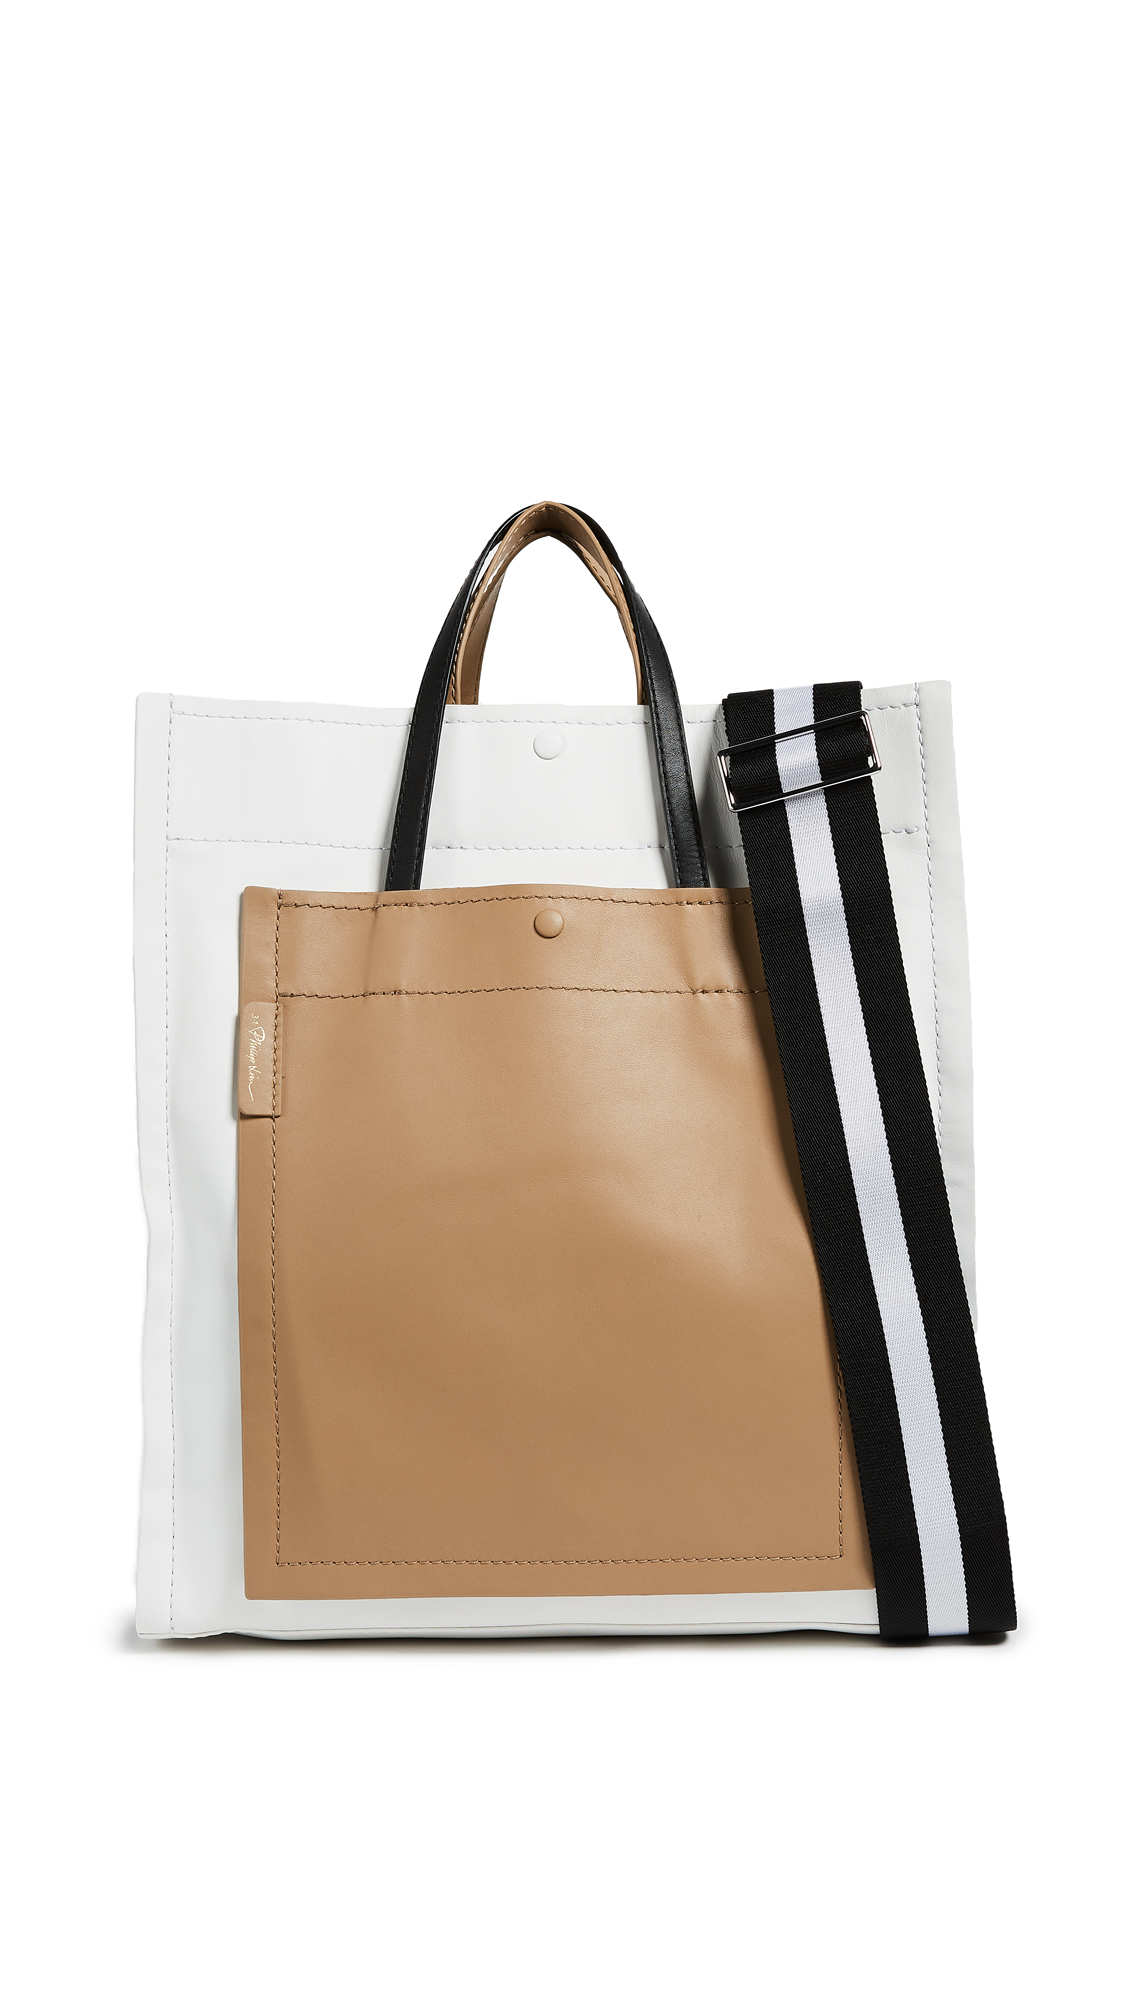 3.1 Phillip Lim Accordion Shopper - Natural